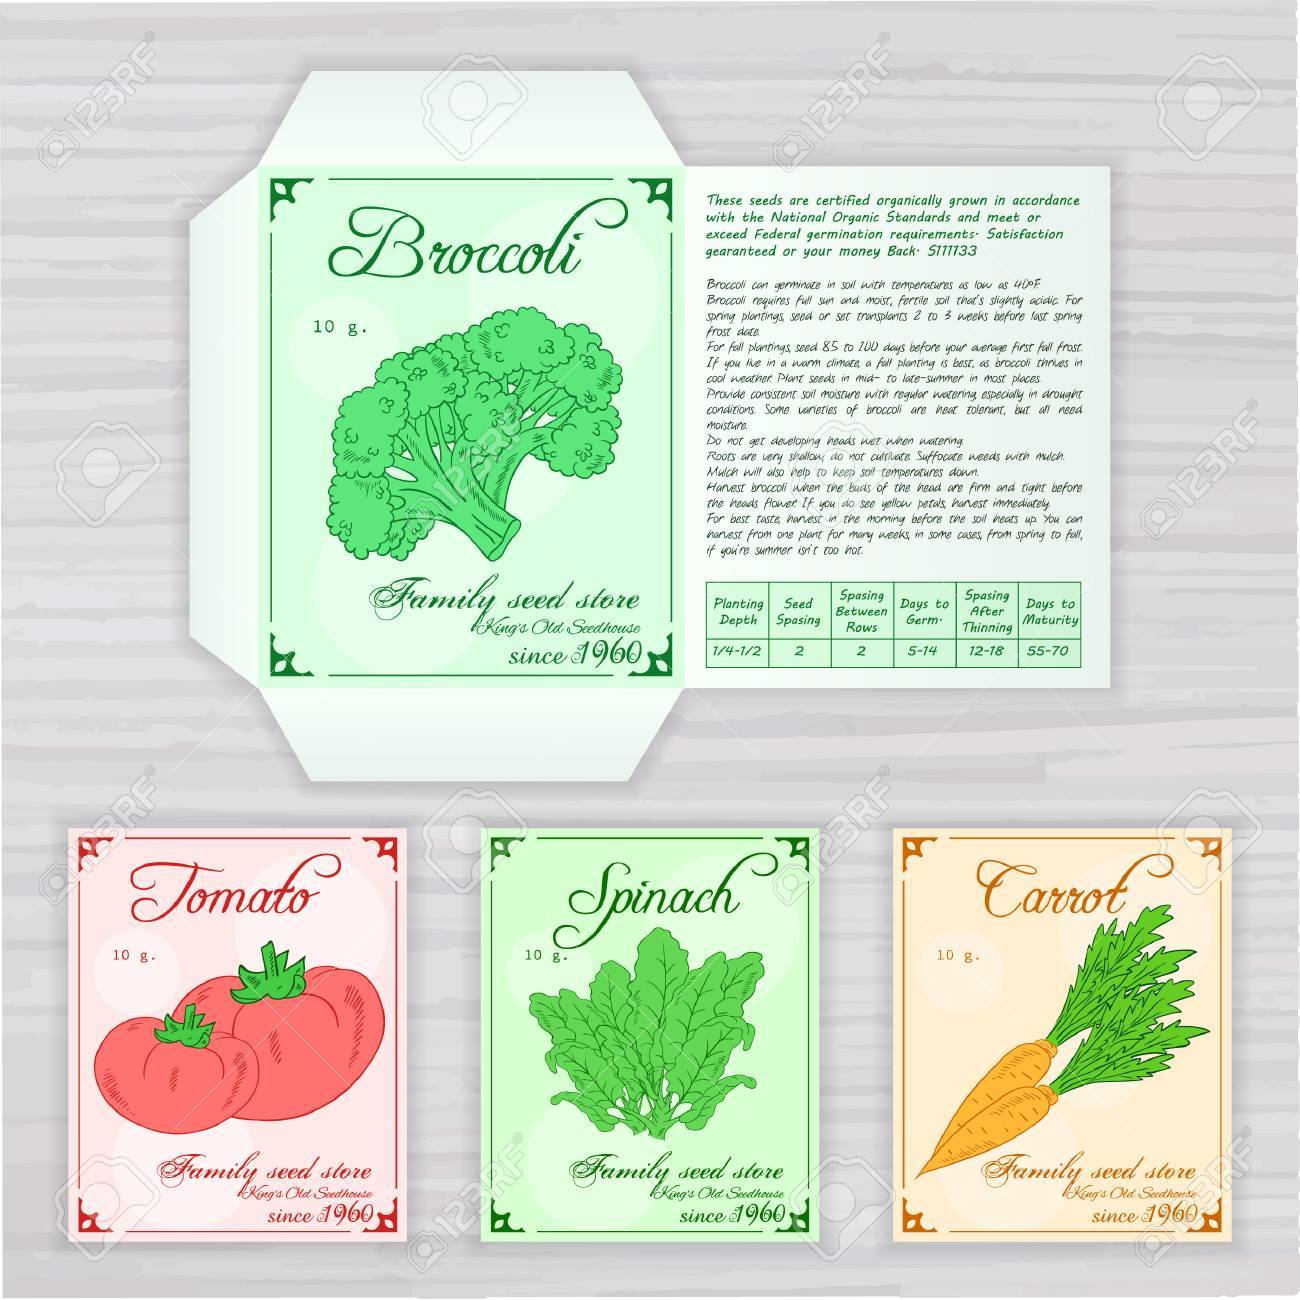 image relating to Printable Seed Packets named vector printable template of seed packet with picture, standing and..